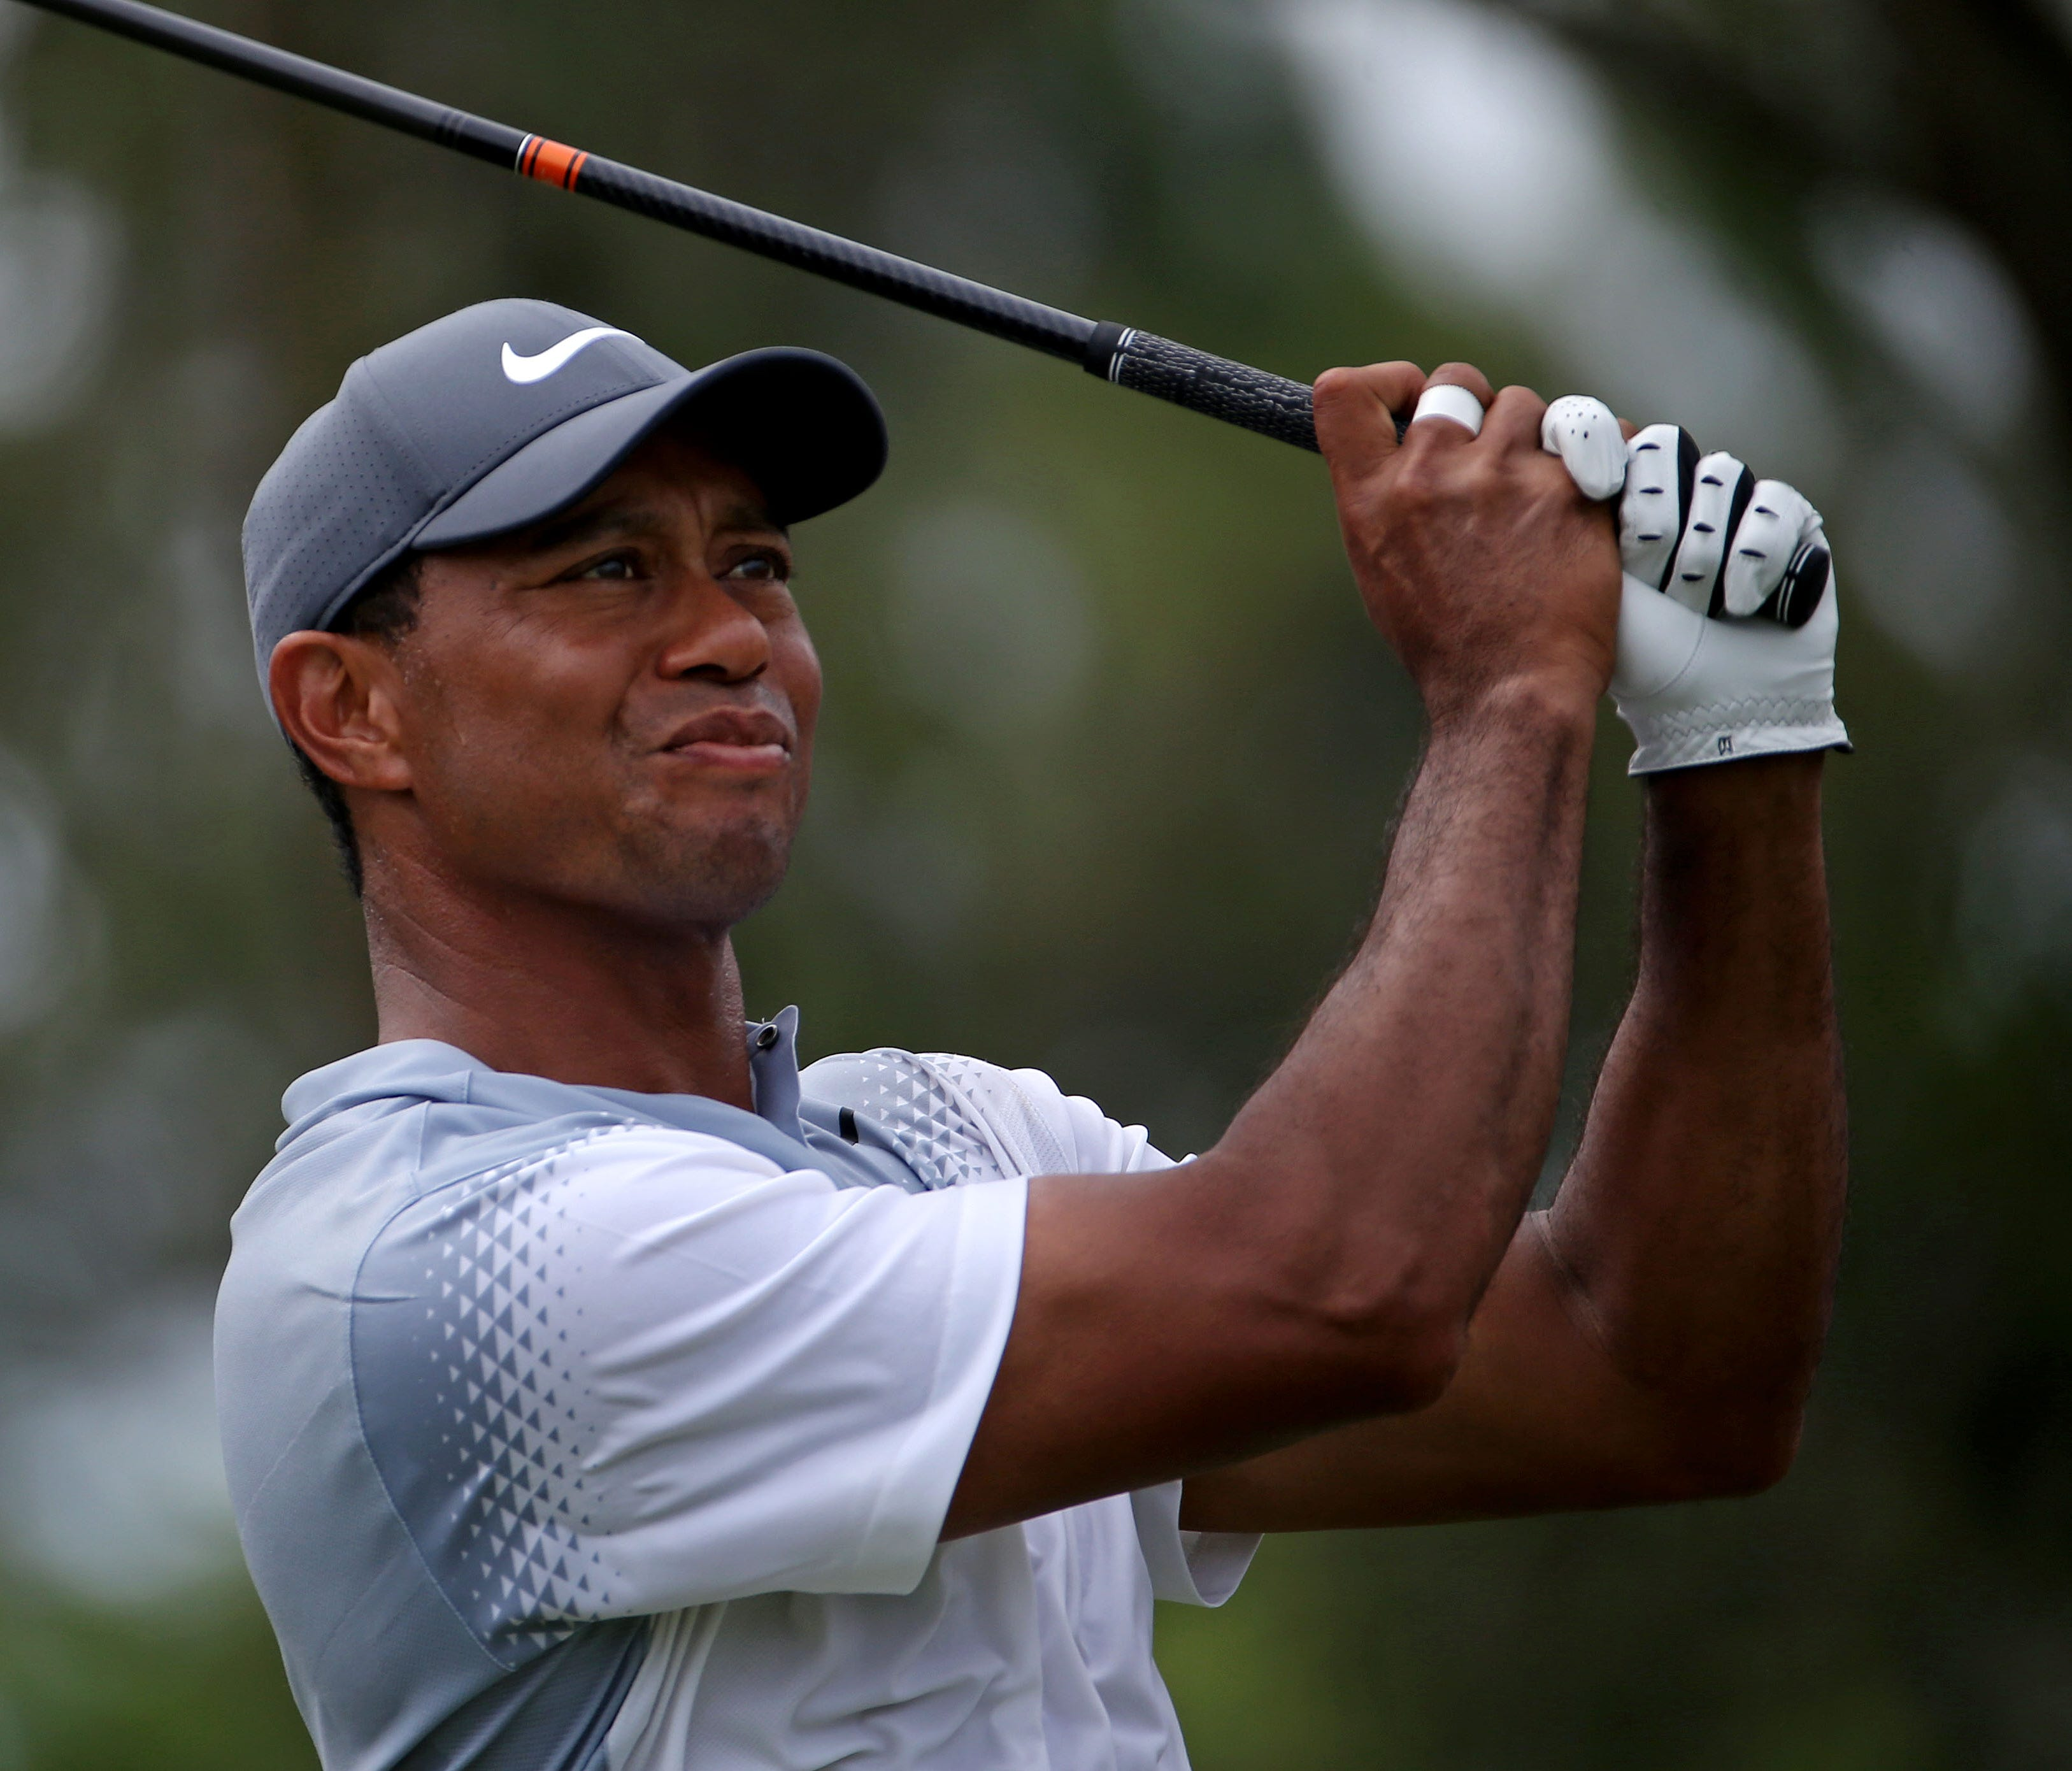 Tiger Woods plays his shot from the ninth tee during the third round of The Players Championship on the Stadium Course at TPC Sawgrass in Ponte Vedra Beach, Fla.